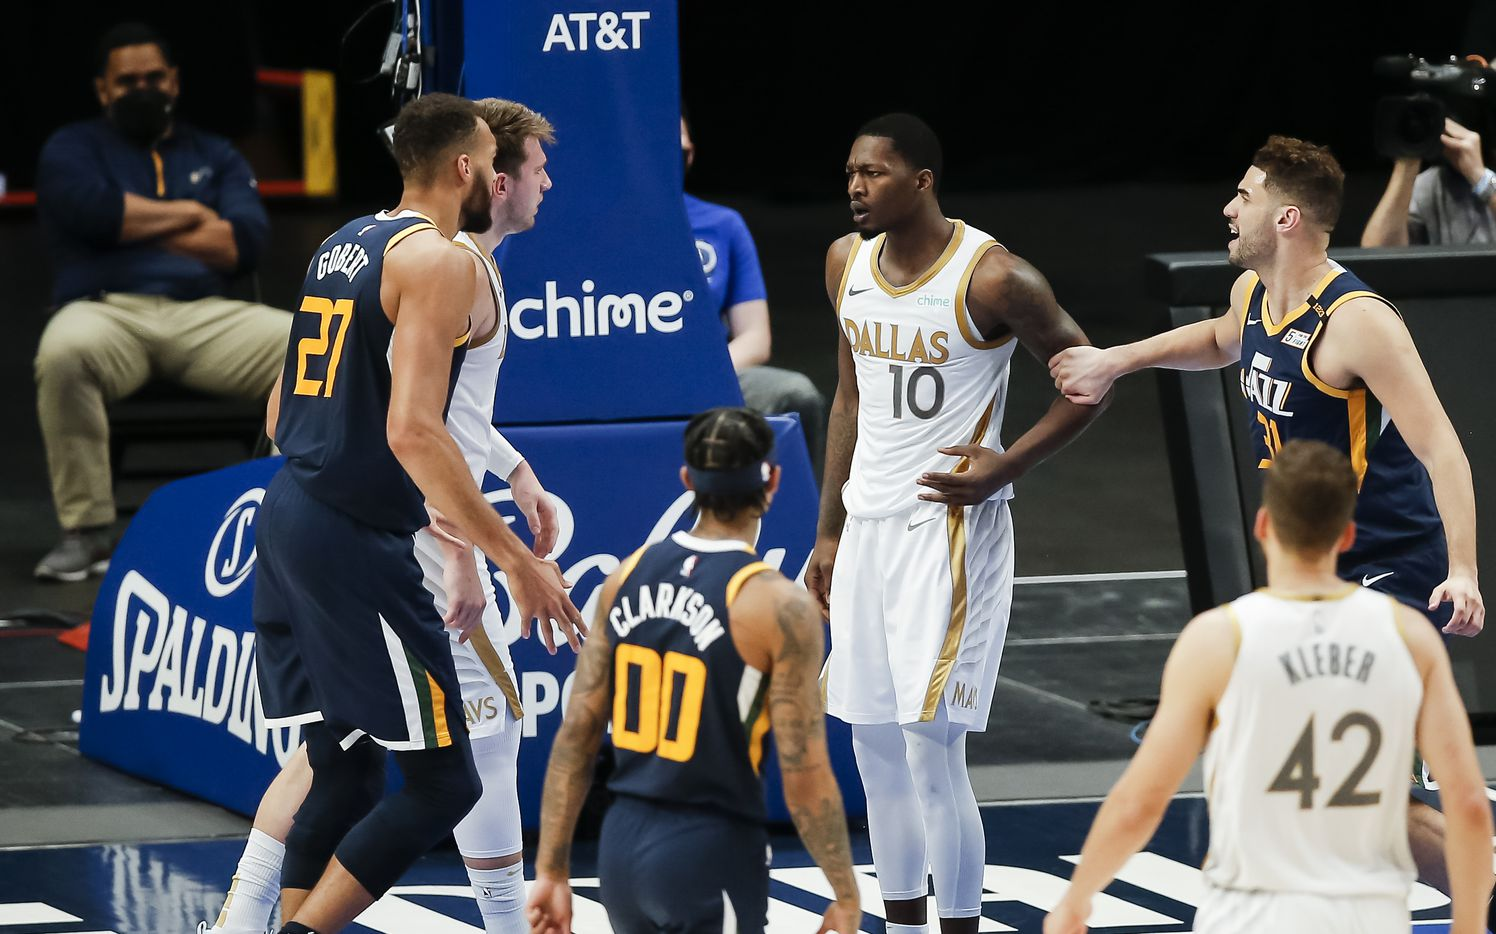 Utah Jazz forward Rudy Gobert (27) and Dallas Mavericks forward Dorian Finney-Smith (10) are separated by teammates after a brief scuffle during the second half of an NBA basketball game in Dallas, Monday, April 5, 2021. (Brandon Wade/Special Contributor)